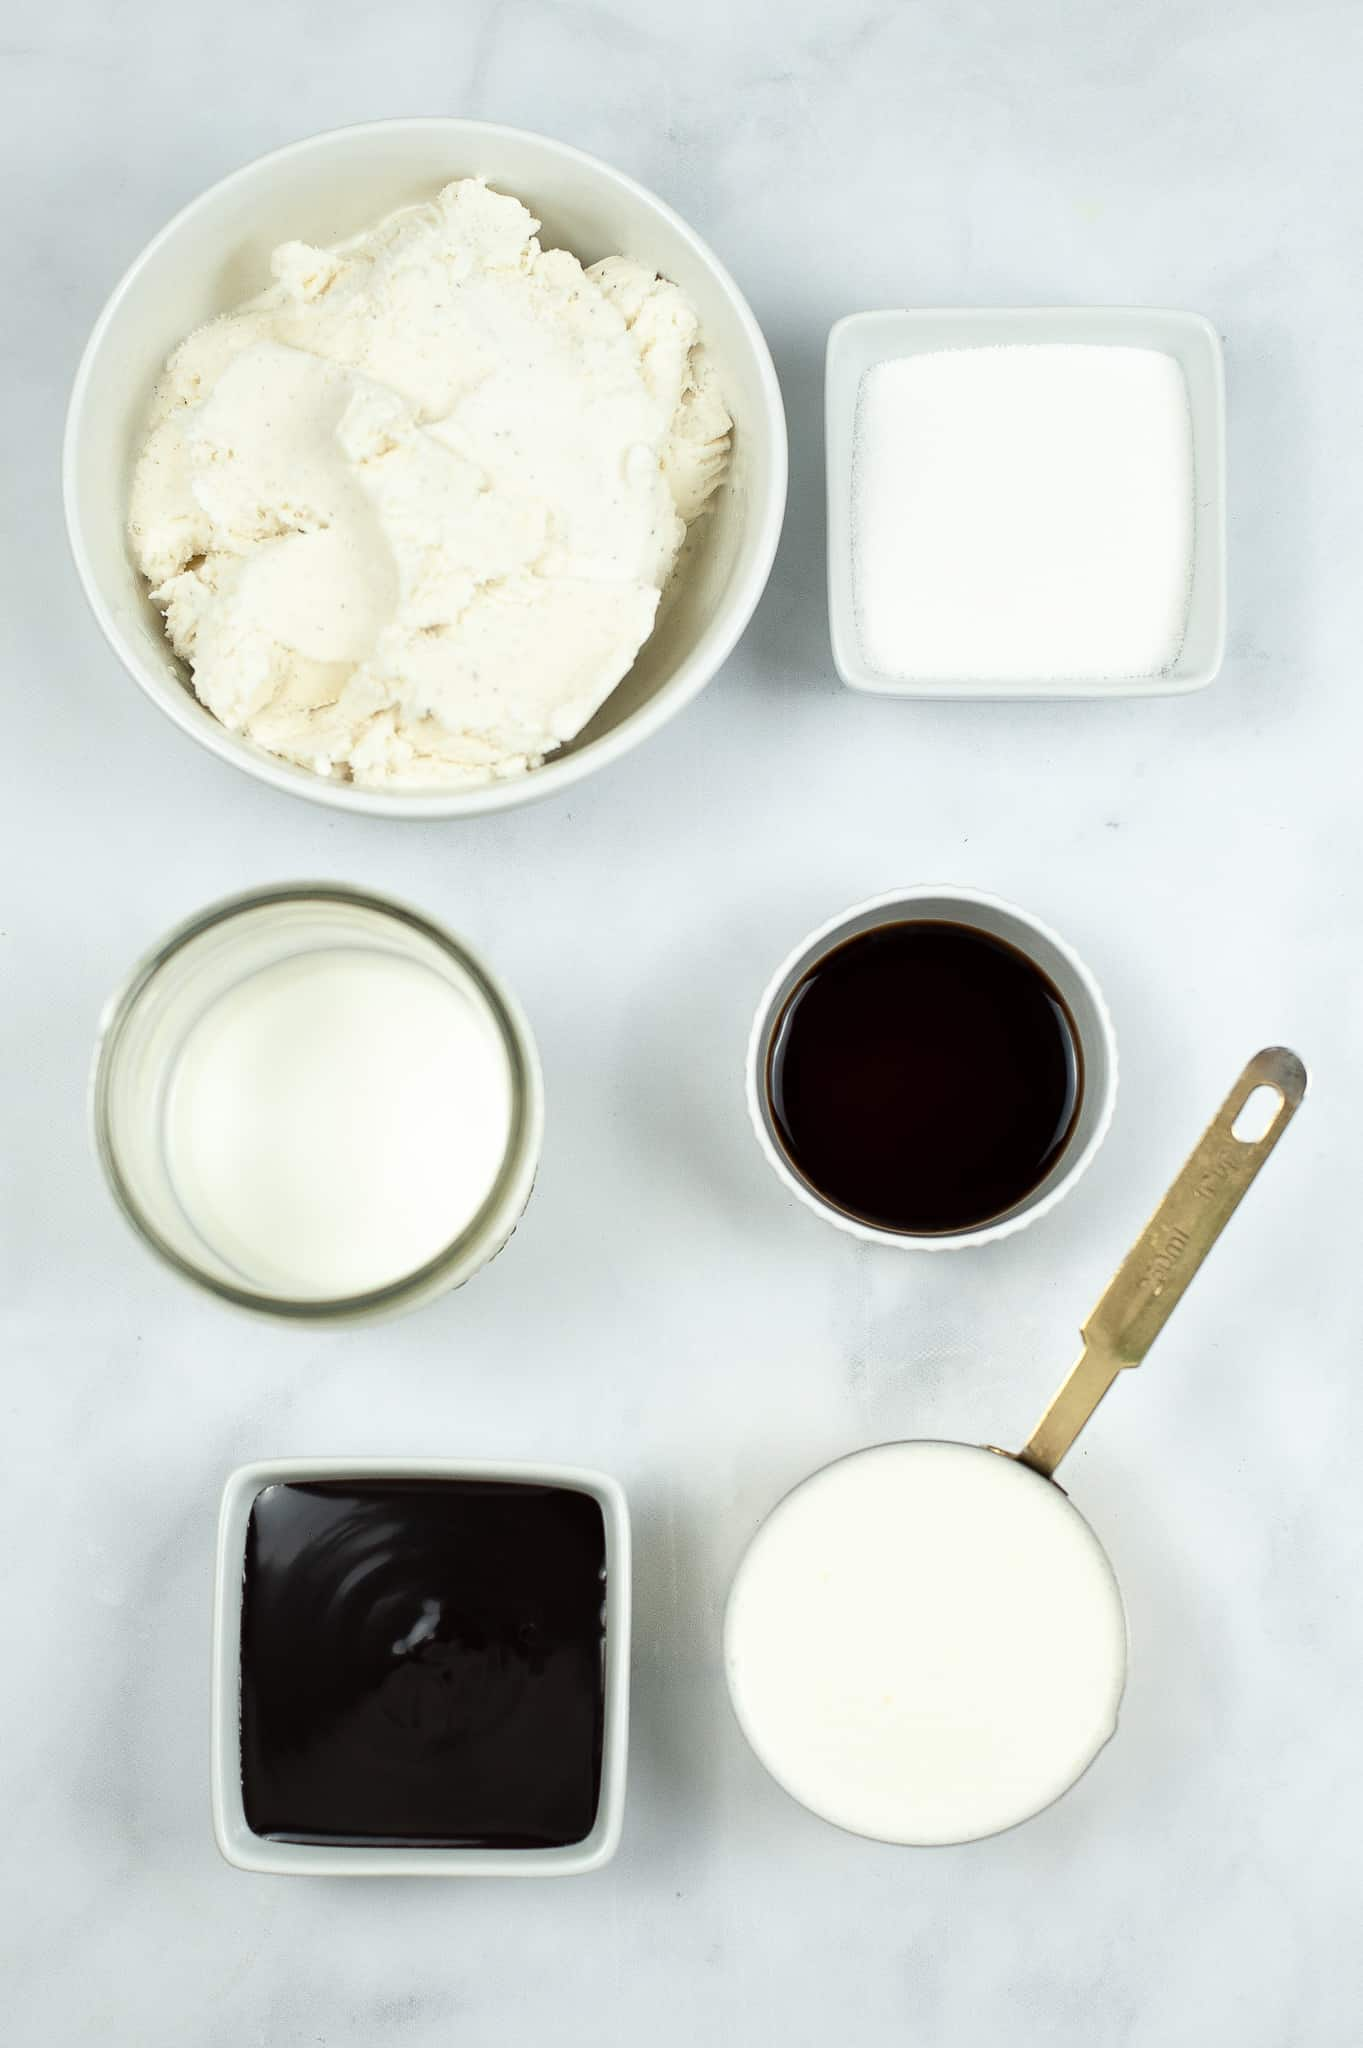 Glass dishes with ice cream, milk, chocolate chips and vanilla.